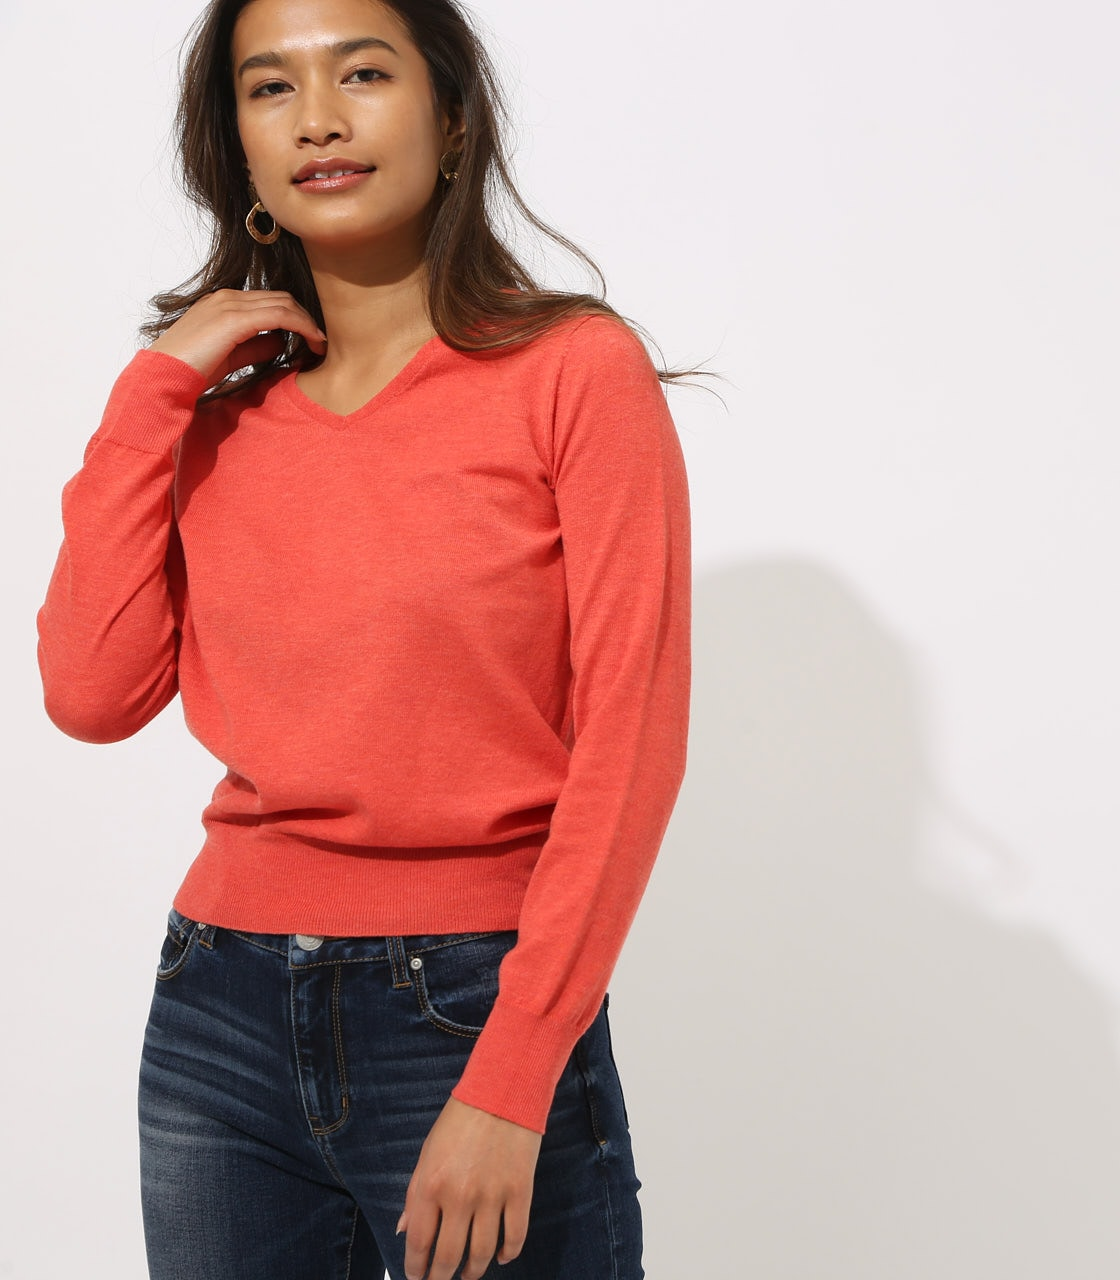 BASIC VNECK KNIT TOPS 詳細画像 L/RED 2